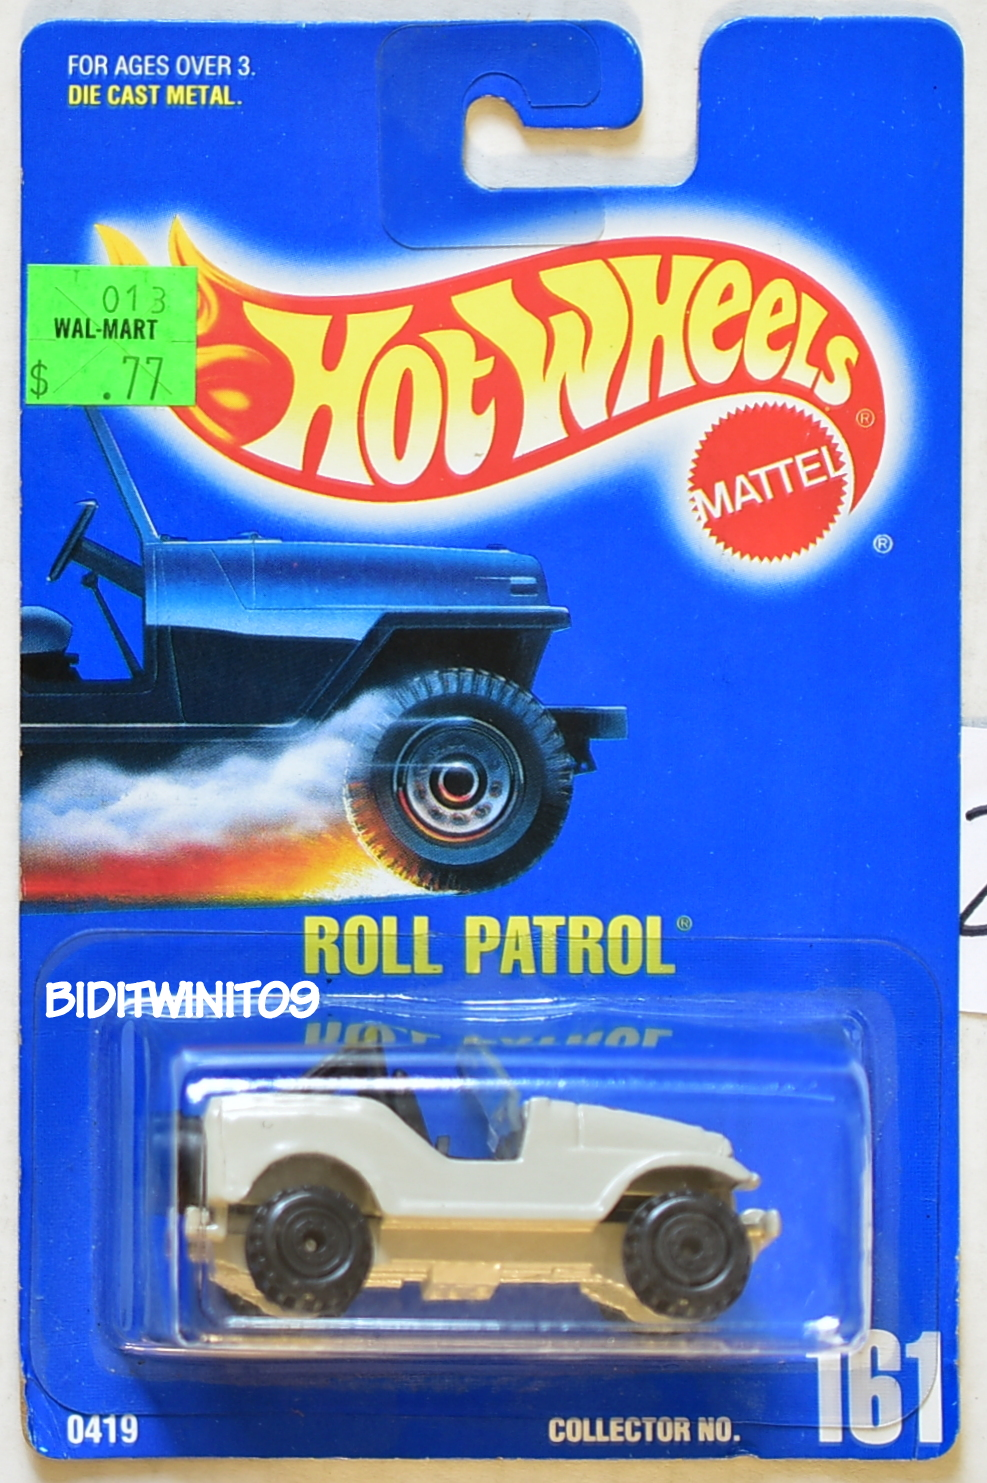 HOT WHEELS 1991 BLUE CARD ROLL PATROL #161 STAR TAMPO W/ CONSTRUCTION WHEELS 22